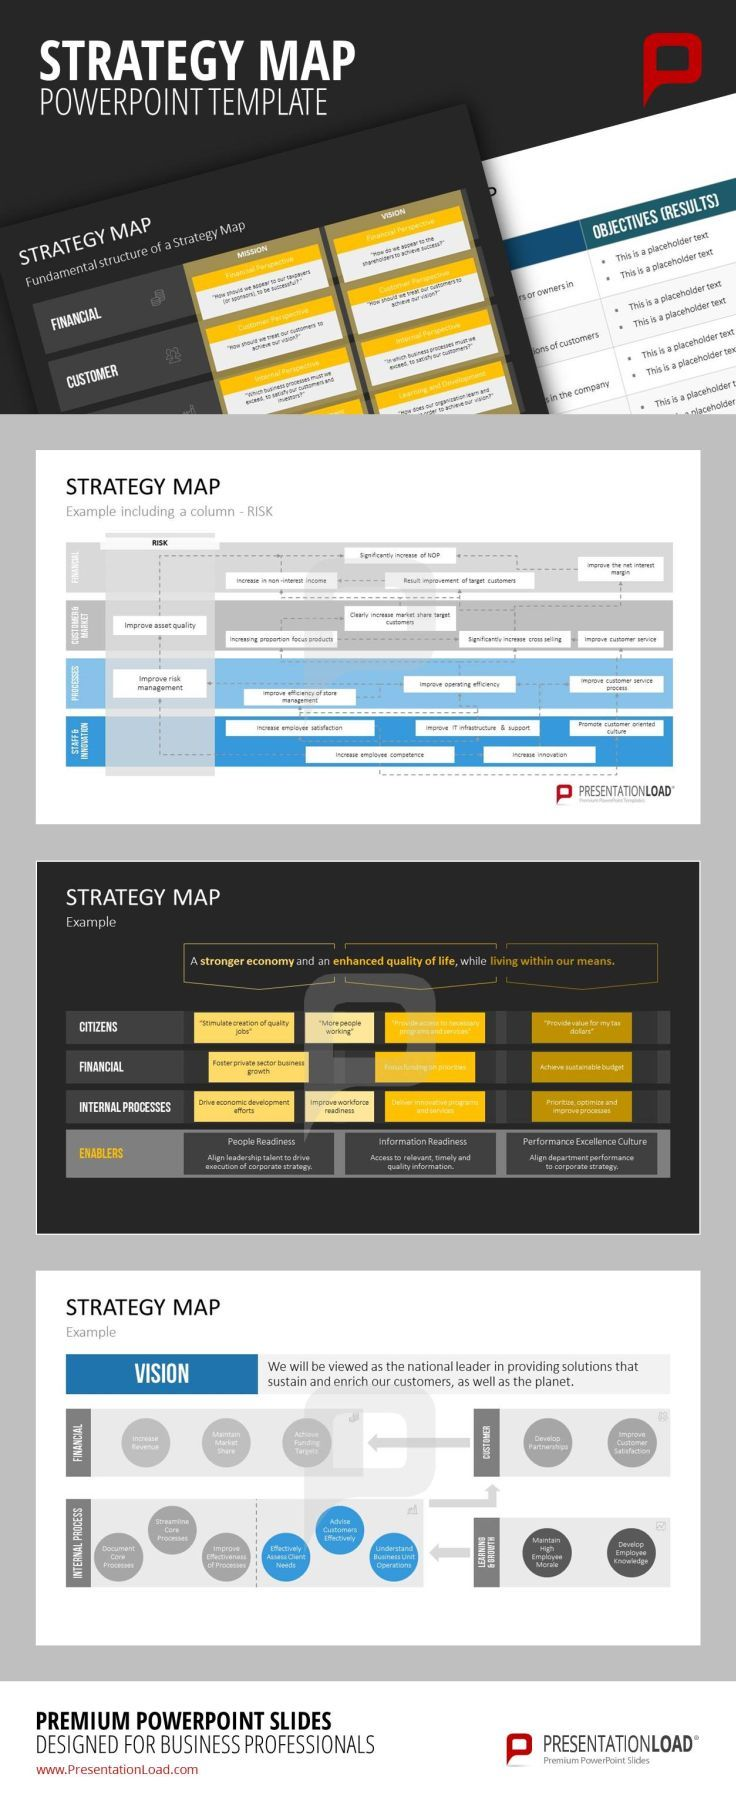 Professional support from strategy map examples and templates for professional support from strategy map examples and templates for powerpoint to create succeeding business plans alramifo Choice Image